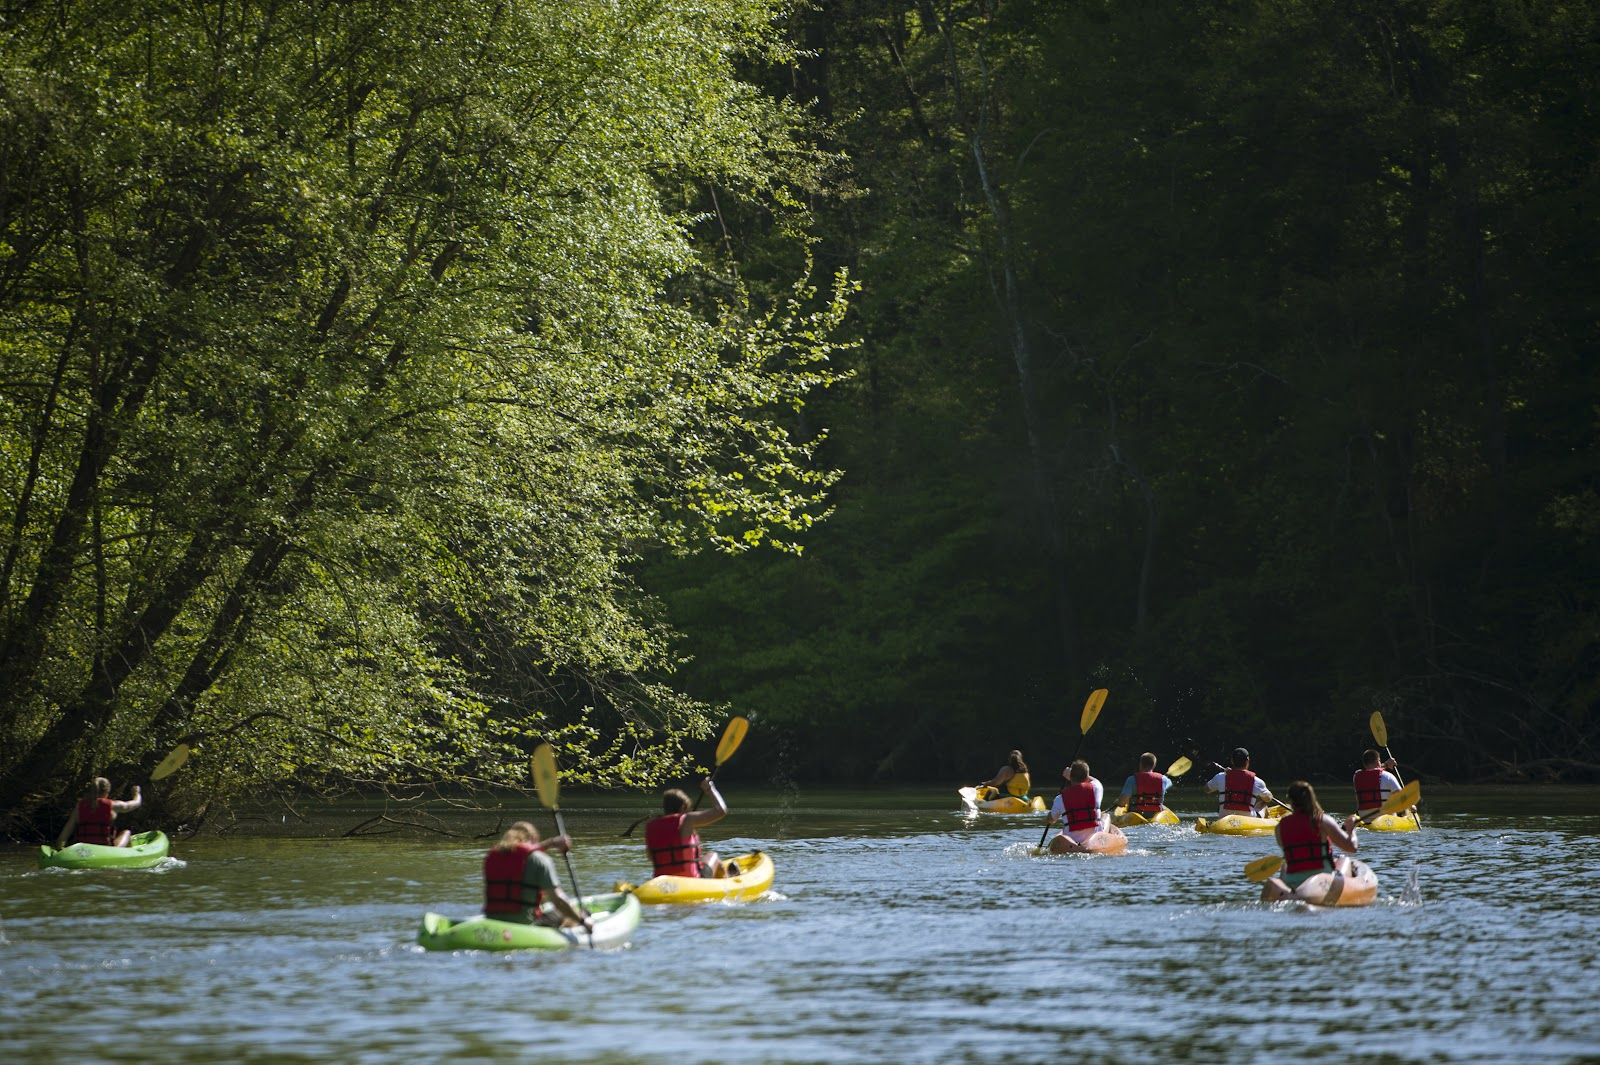 USNWC_Flatwater_Kayaking_on_the_Catawba_River.jpg